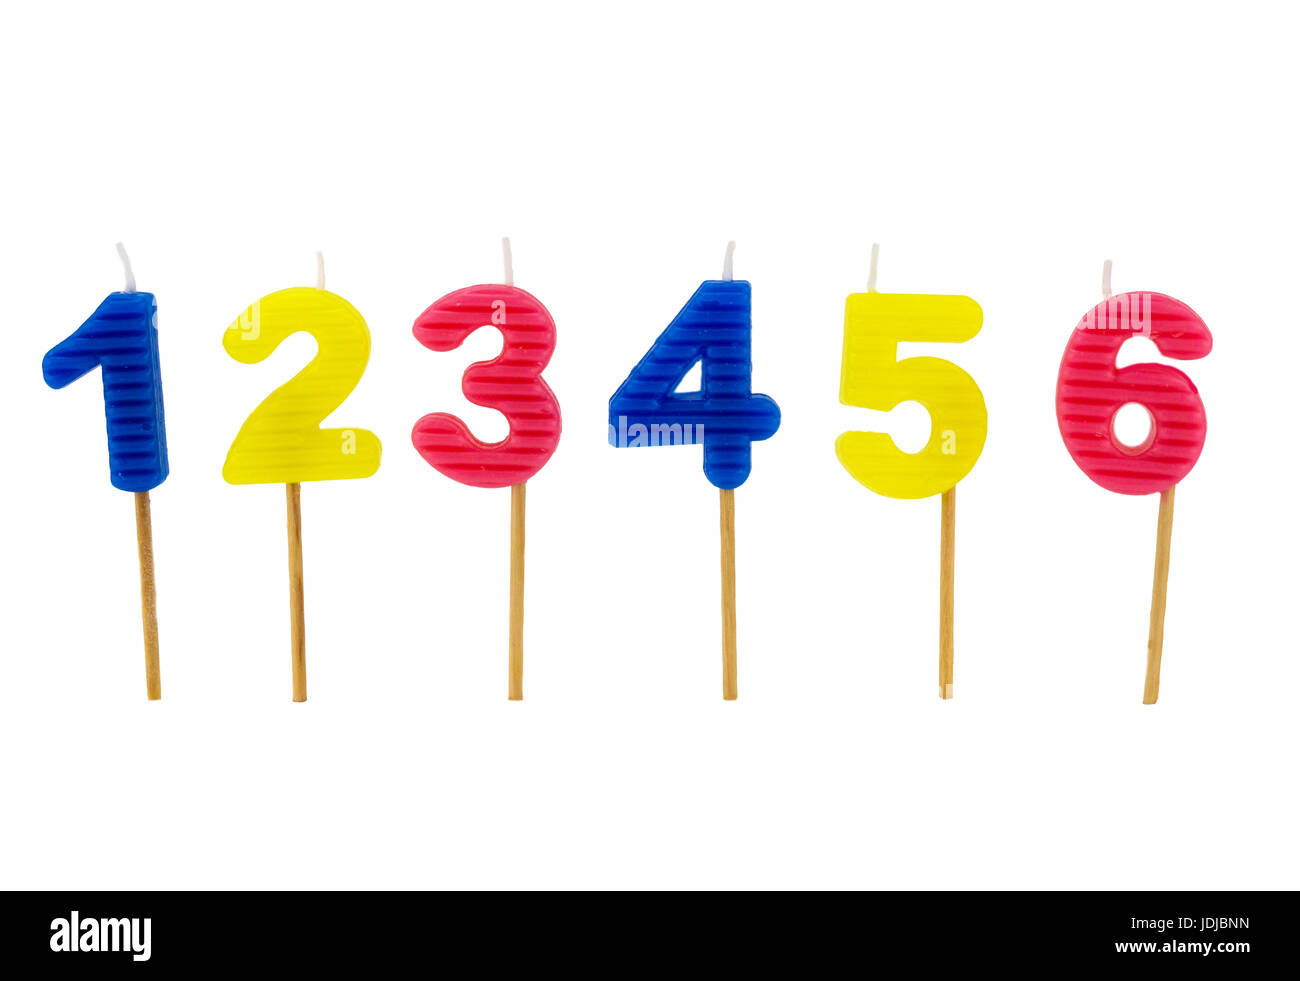 Number birthday candles isolated on white background - Stock Image